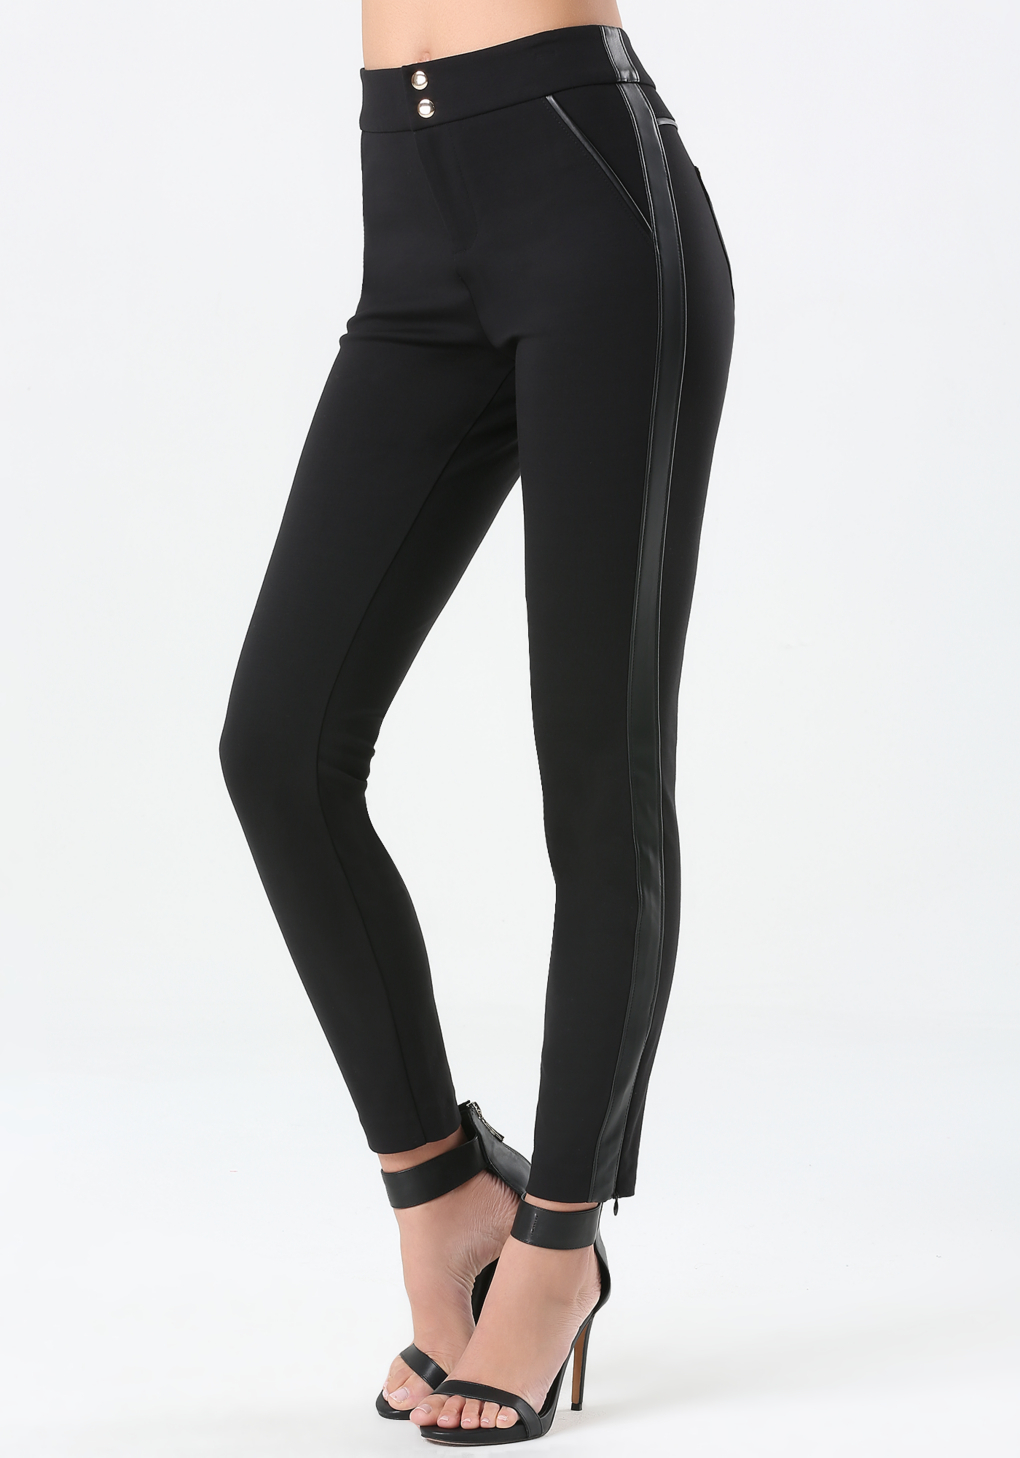 Bebe Ponte Amp Faux Leather Pants In Black Lyst